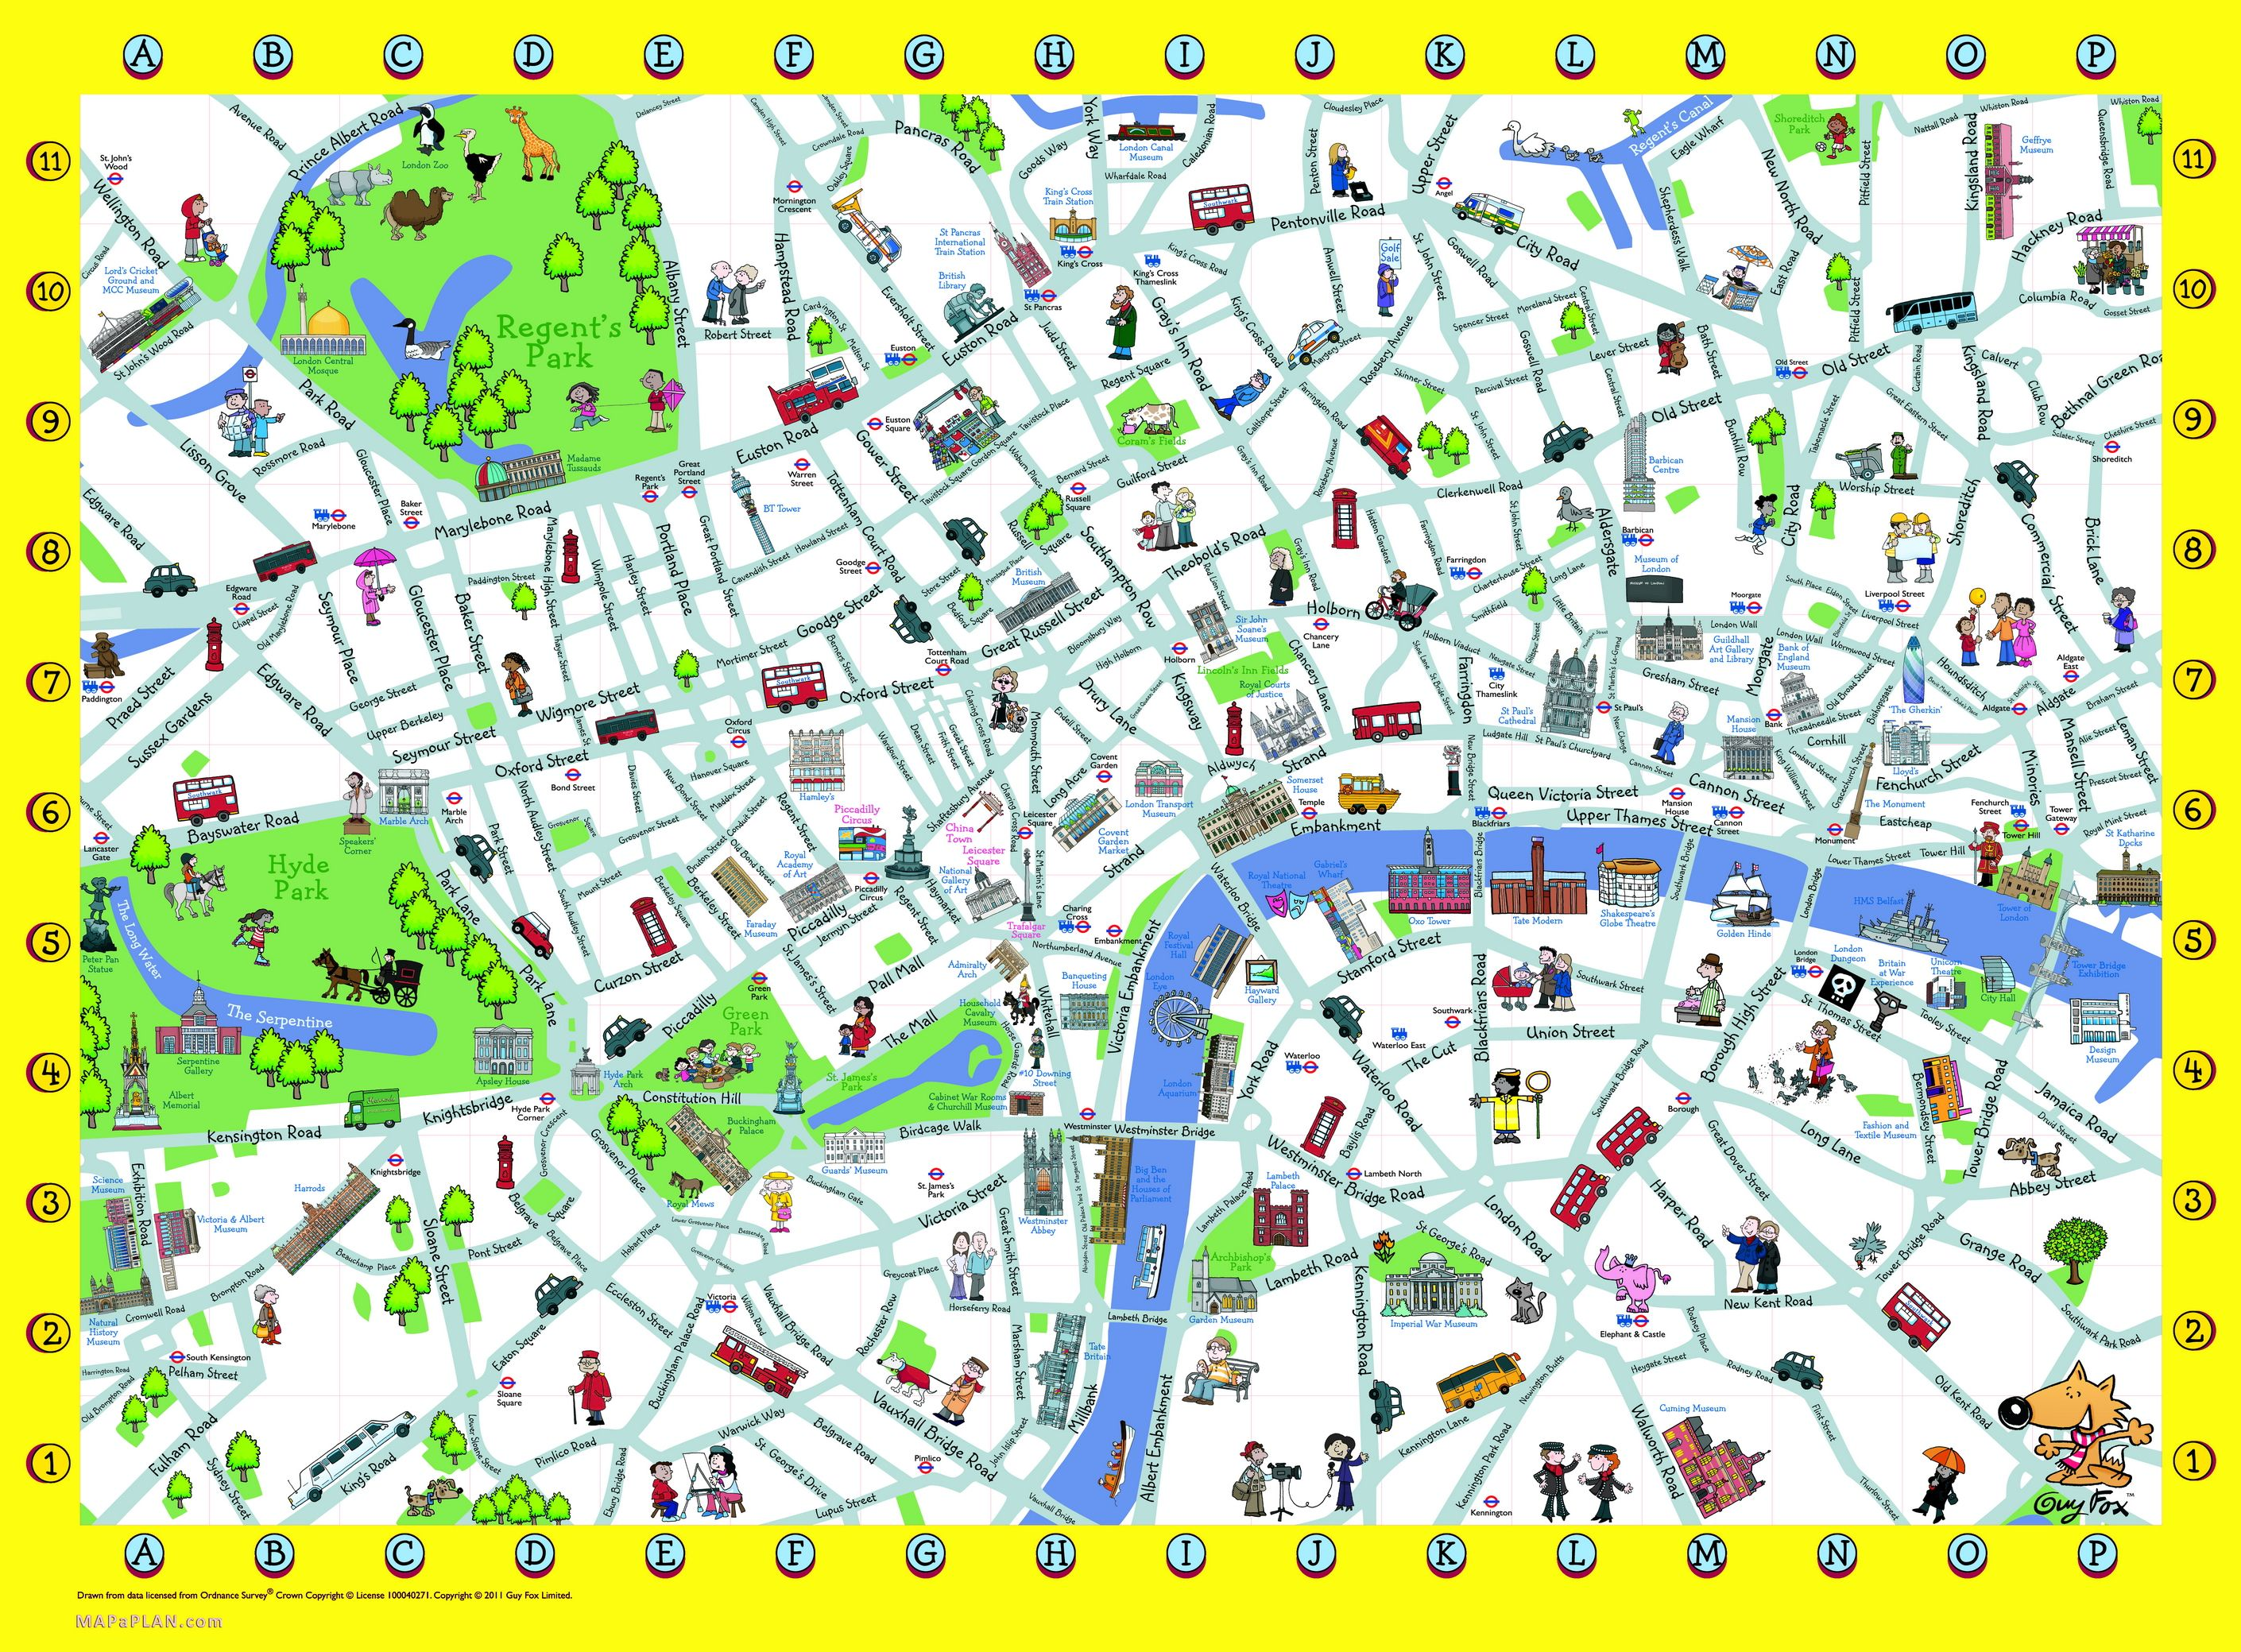 London Landmarks Map.London Detailed Landmark Map London Maps Top Tourist Attractions